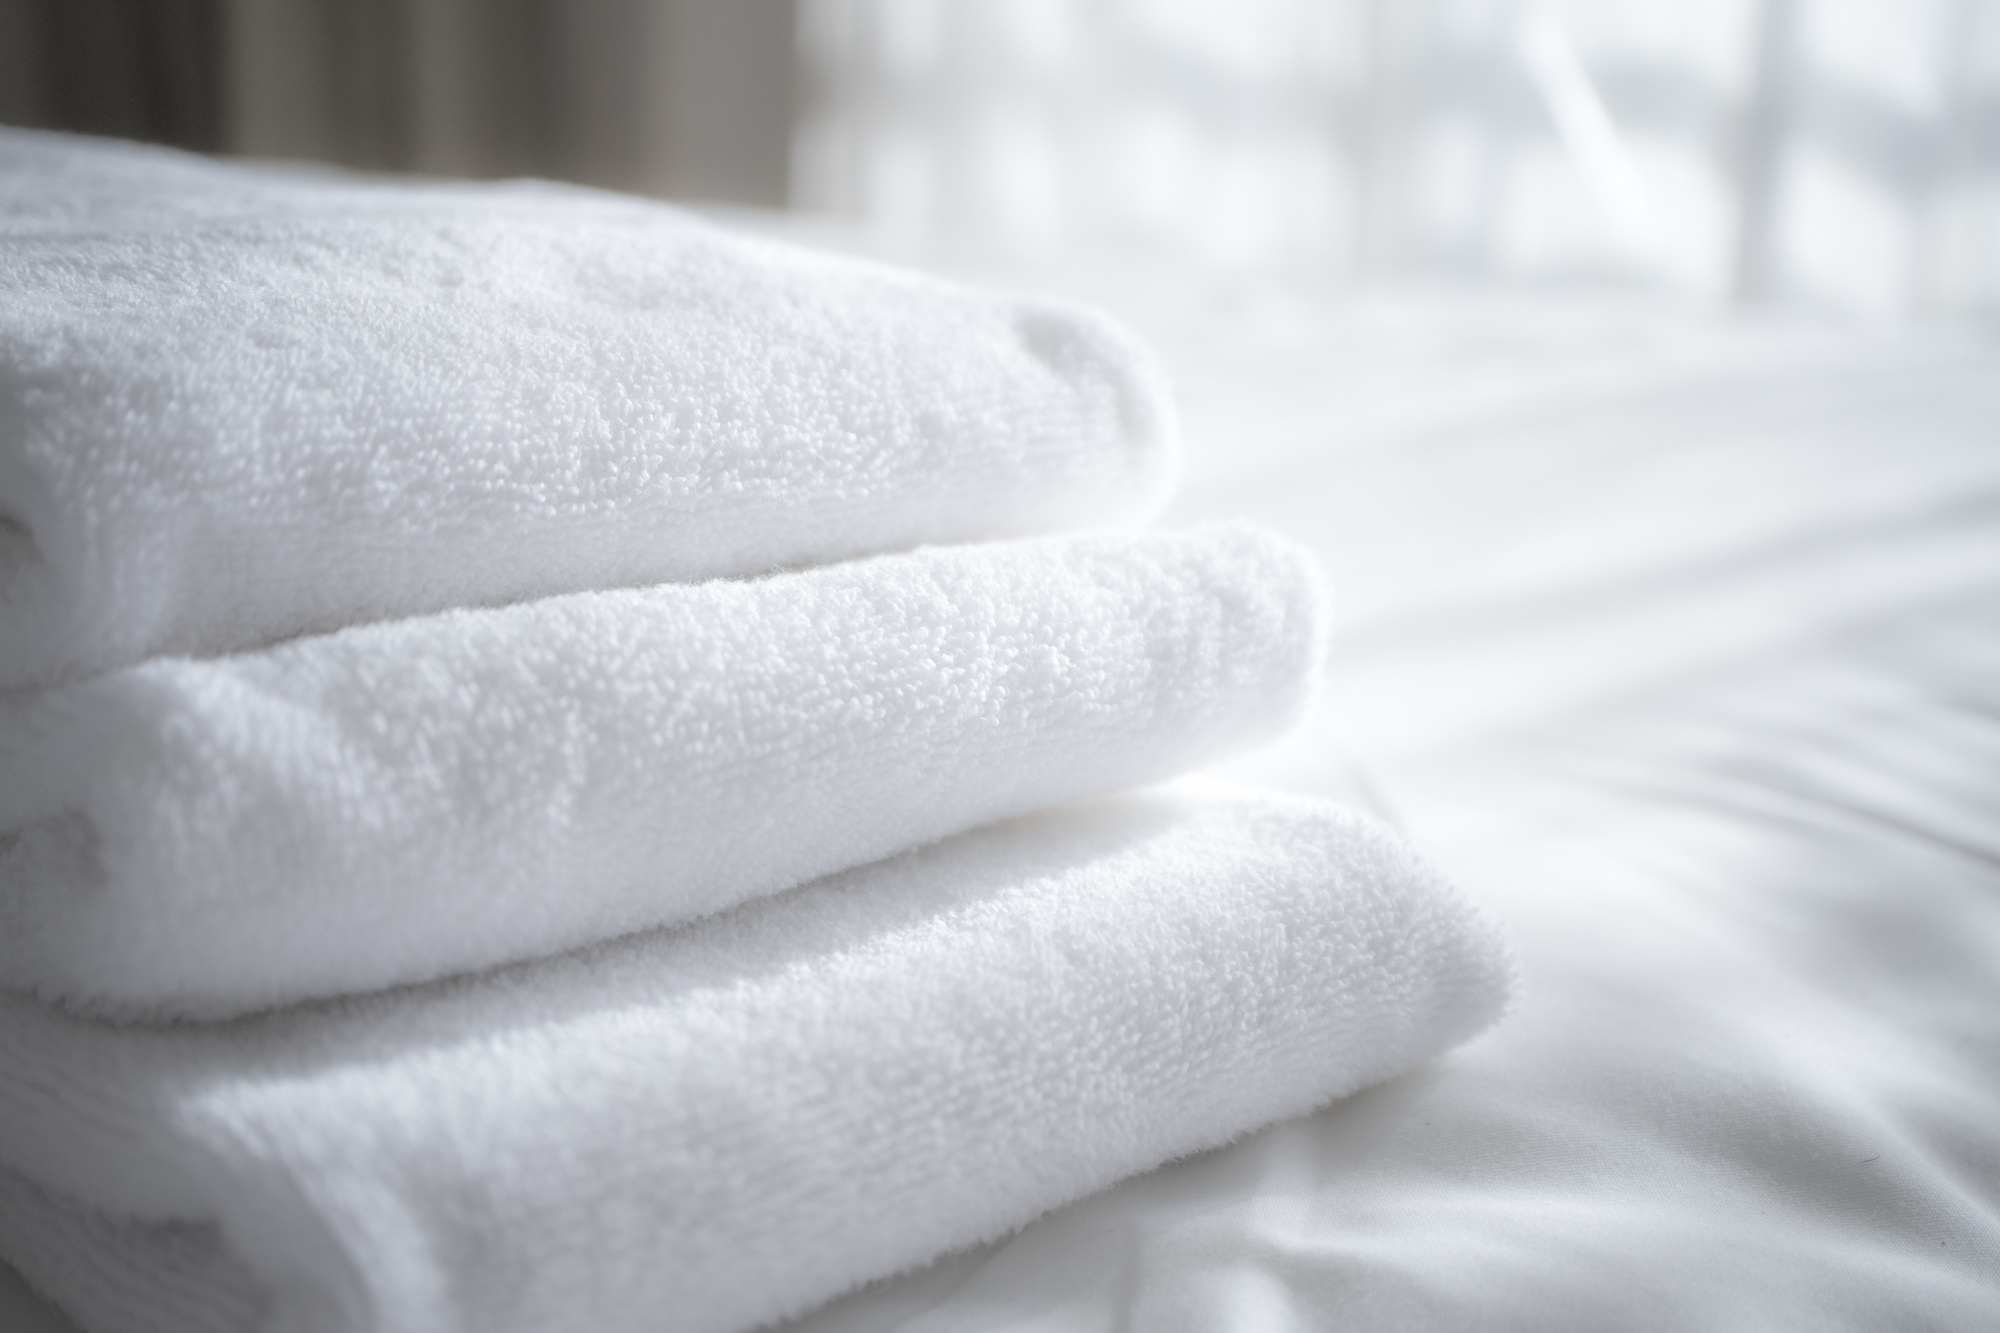 sun lights to the clean white towels on the hotel bed : feels cozy, comfort and relax. - for cozy feeling, i took with extra exposure and defocus shot